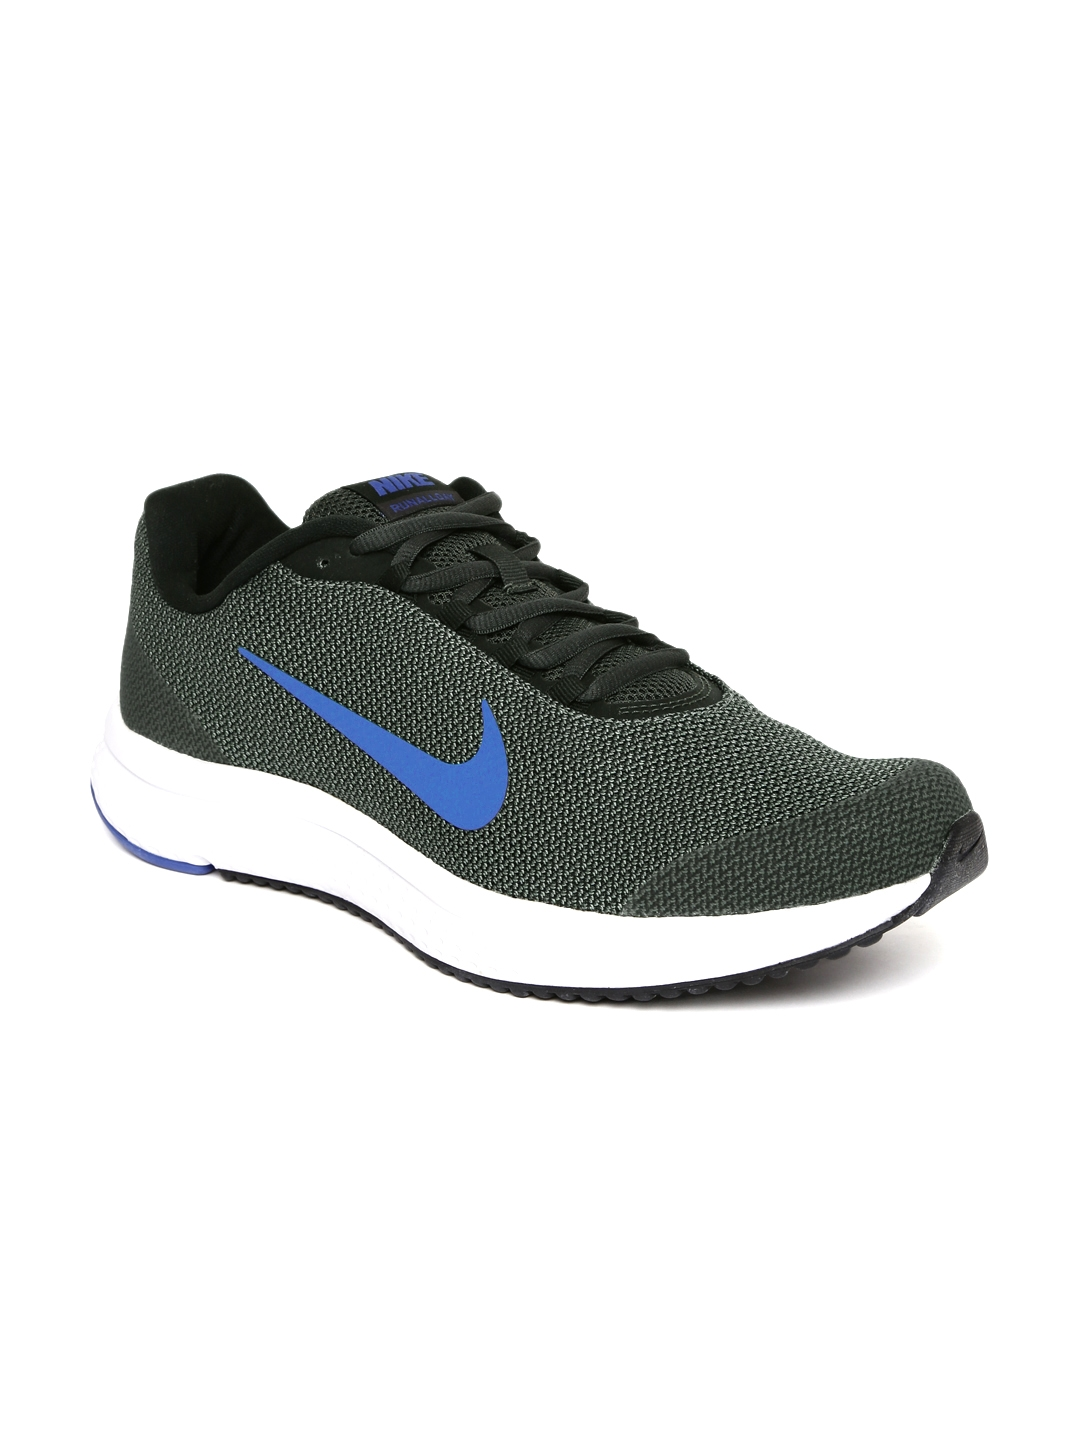 nike shoes online india